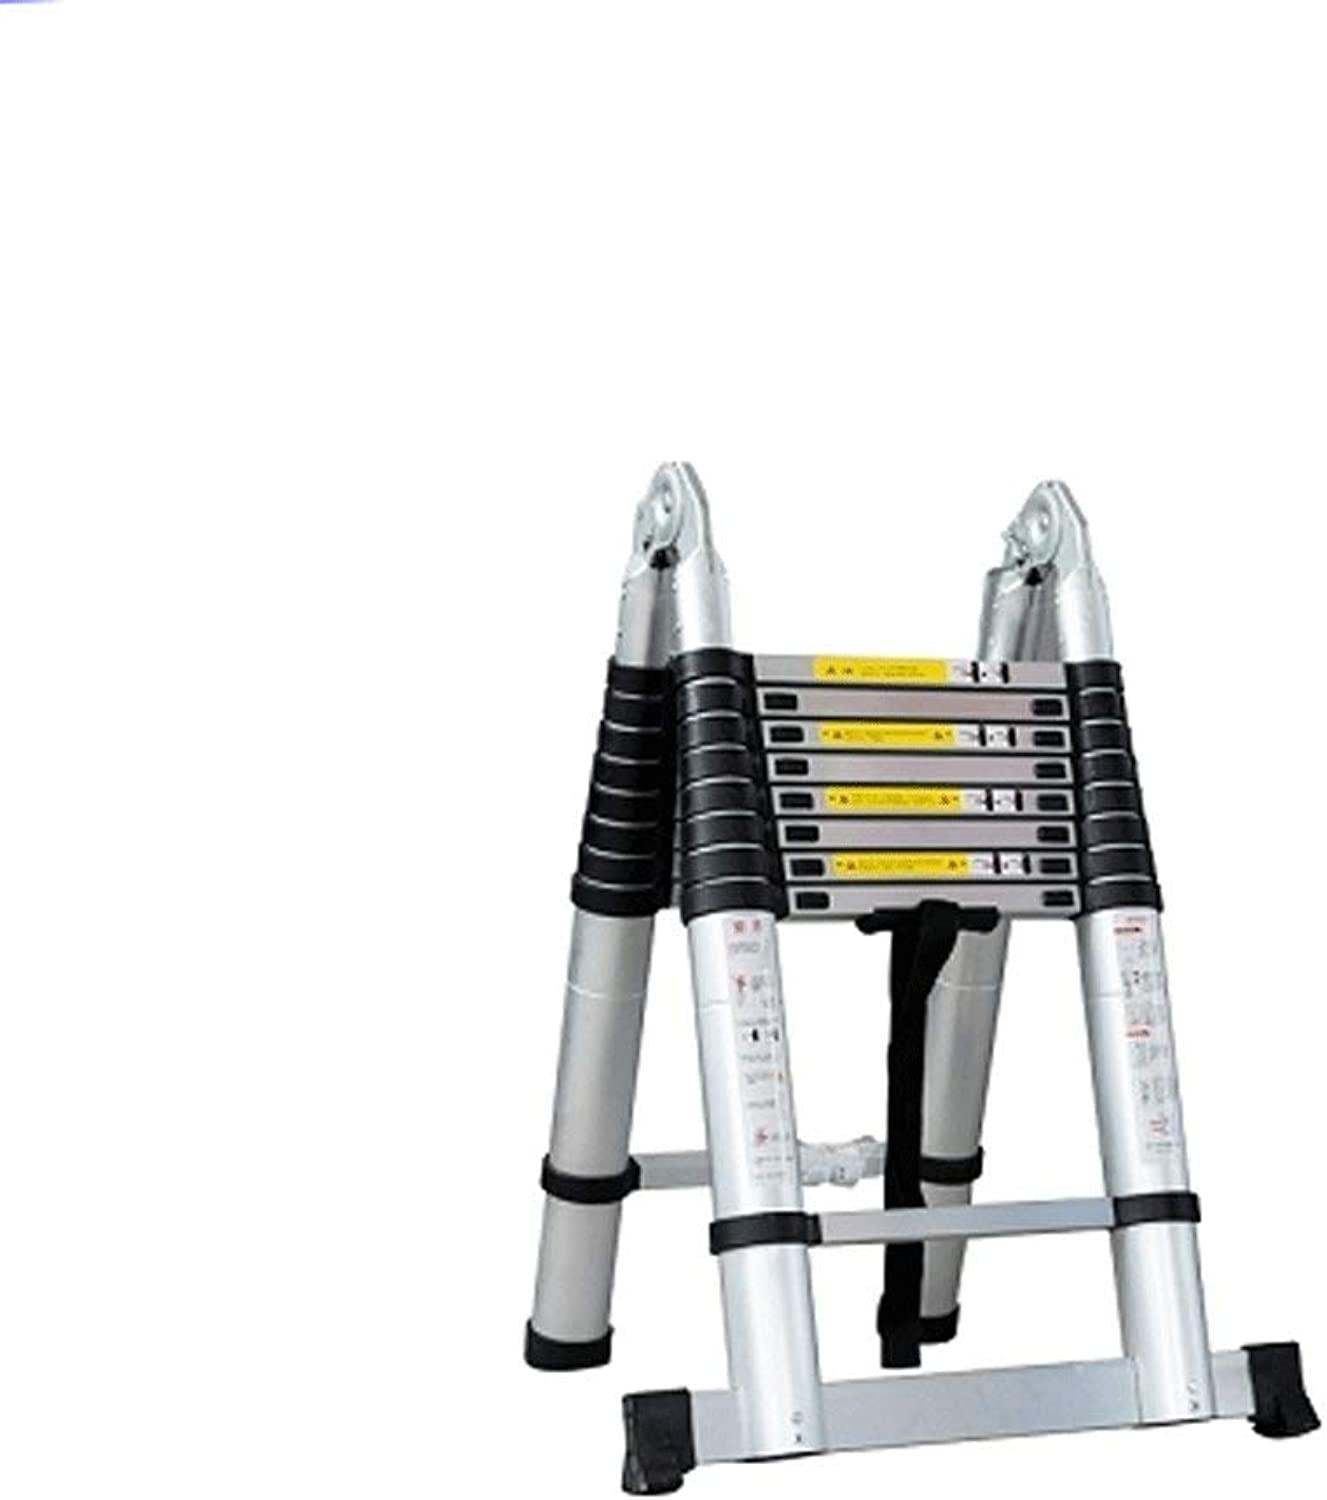 Rong Portable Telescopic Ladder  Aluminum Extension Extended Trapezoidal Folding Ladder, Maximum Load 330lbs Aluminum Ladder, In Line With En131 And Ce Standards,2M+2M